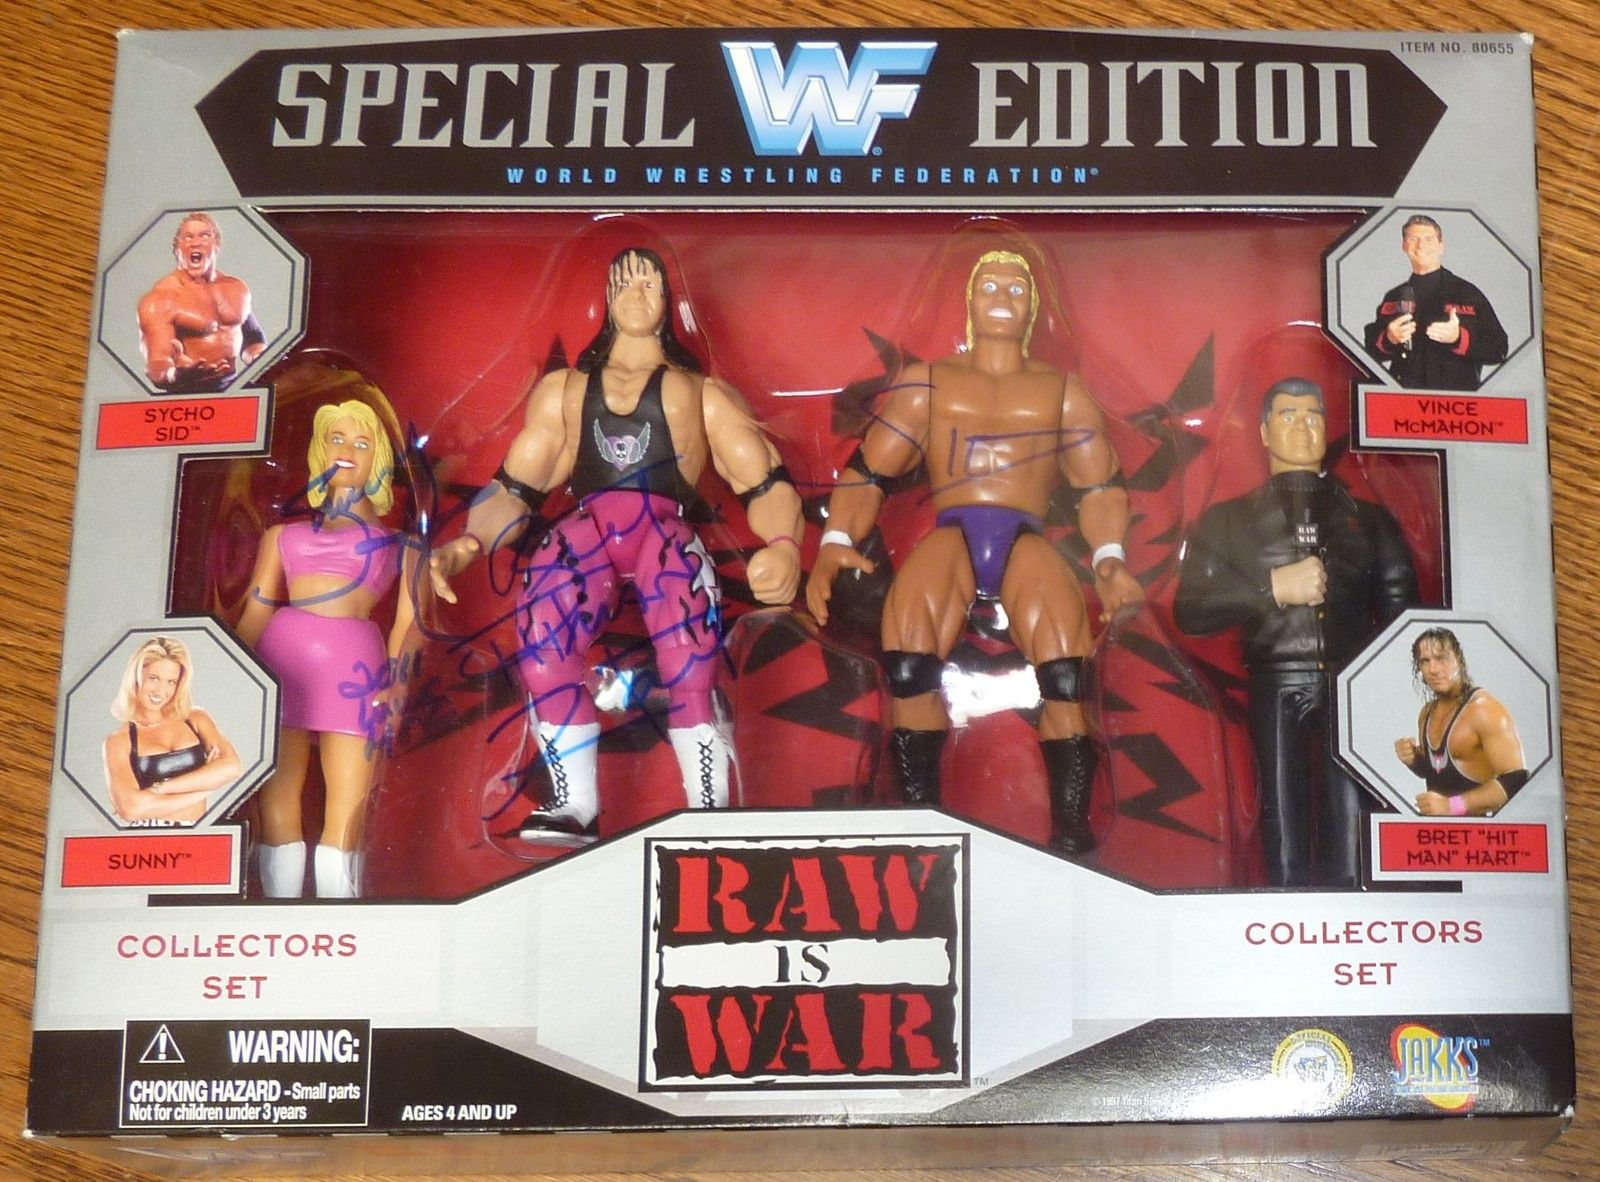 WWF figure collection Sunny Bret Hart Psycho Sid Vince McMahon 1